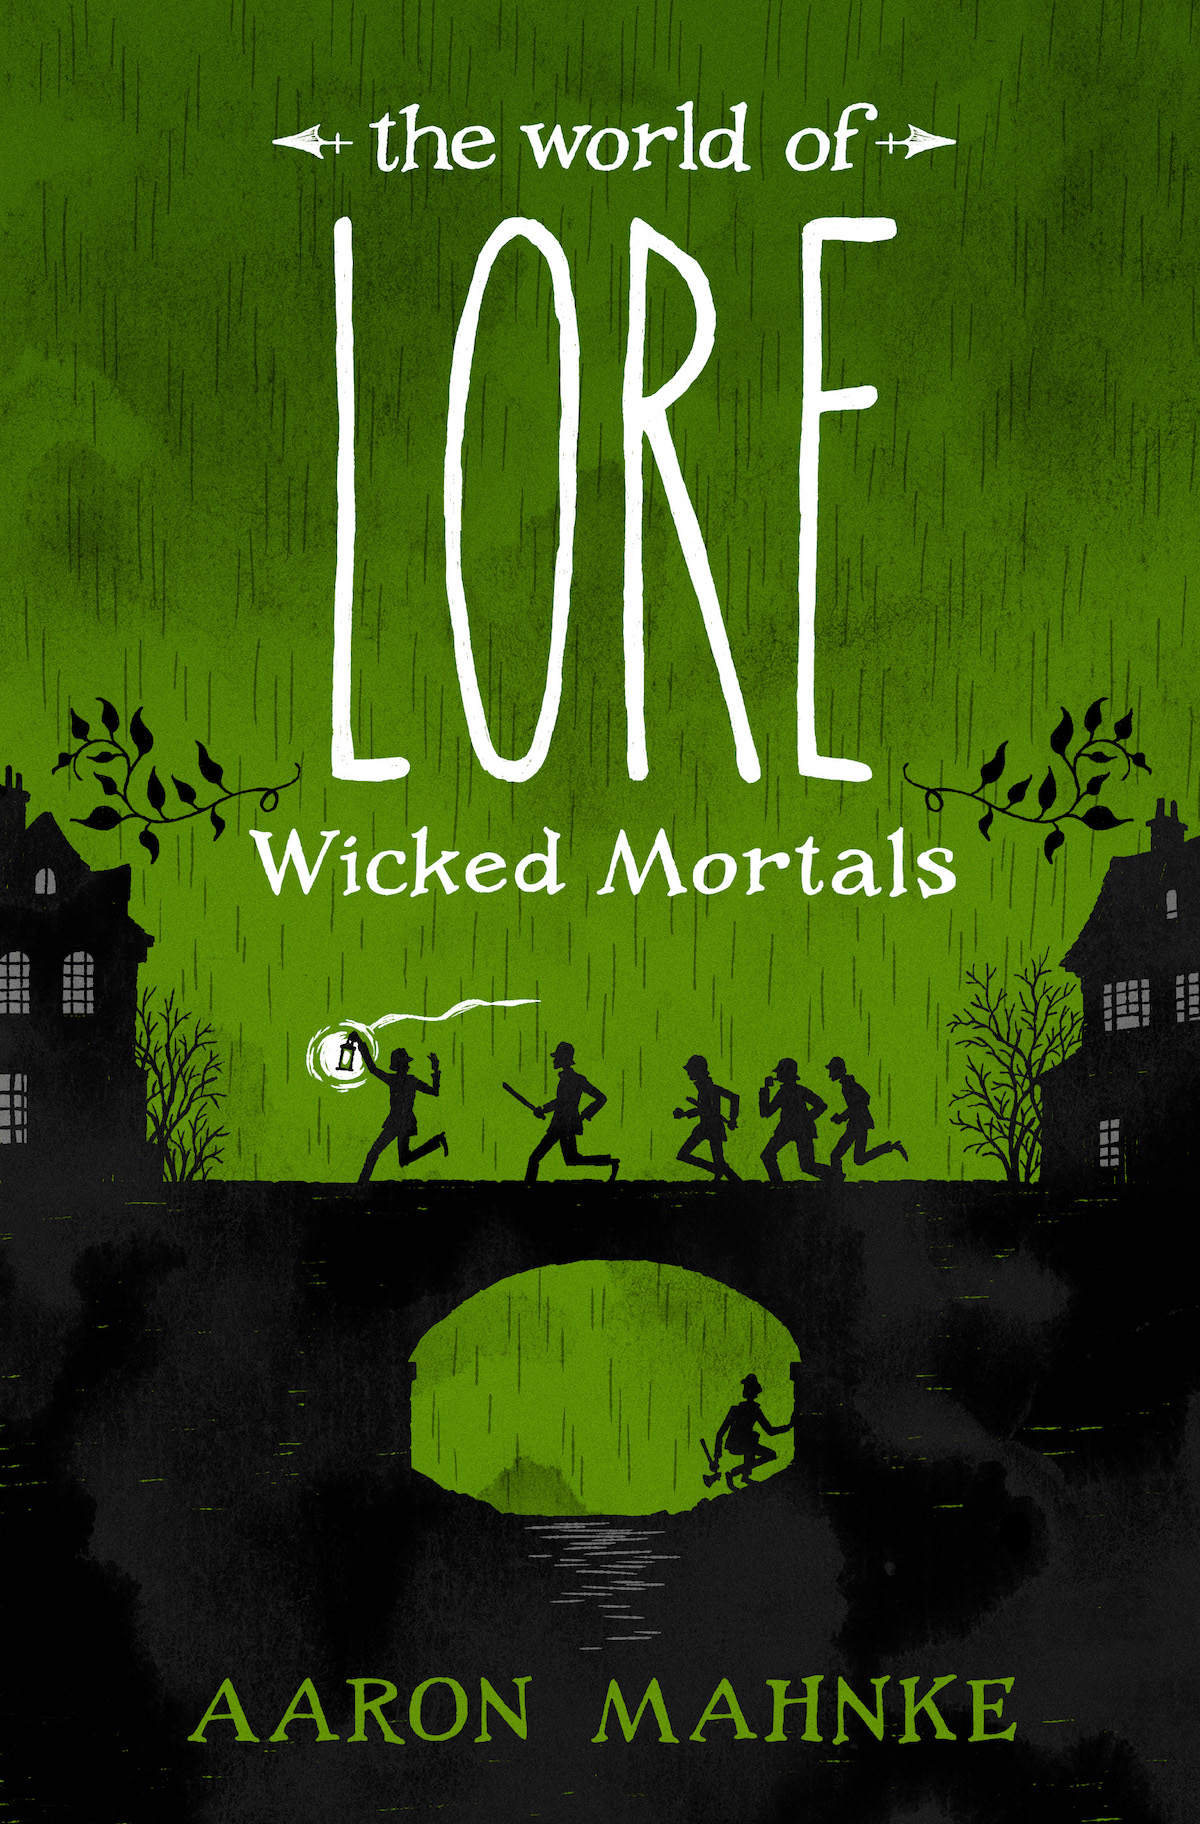 Wicked Libro The Book Series Lore